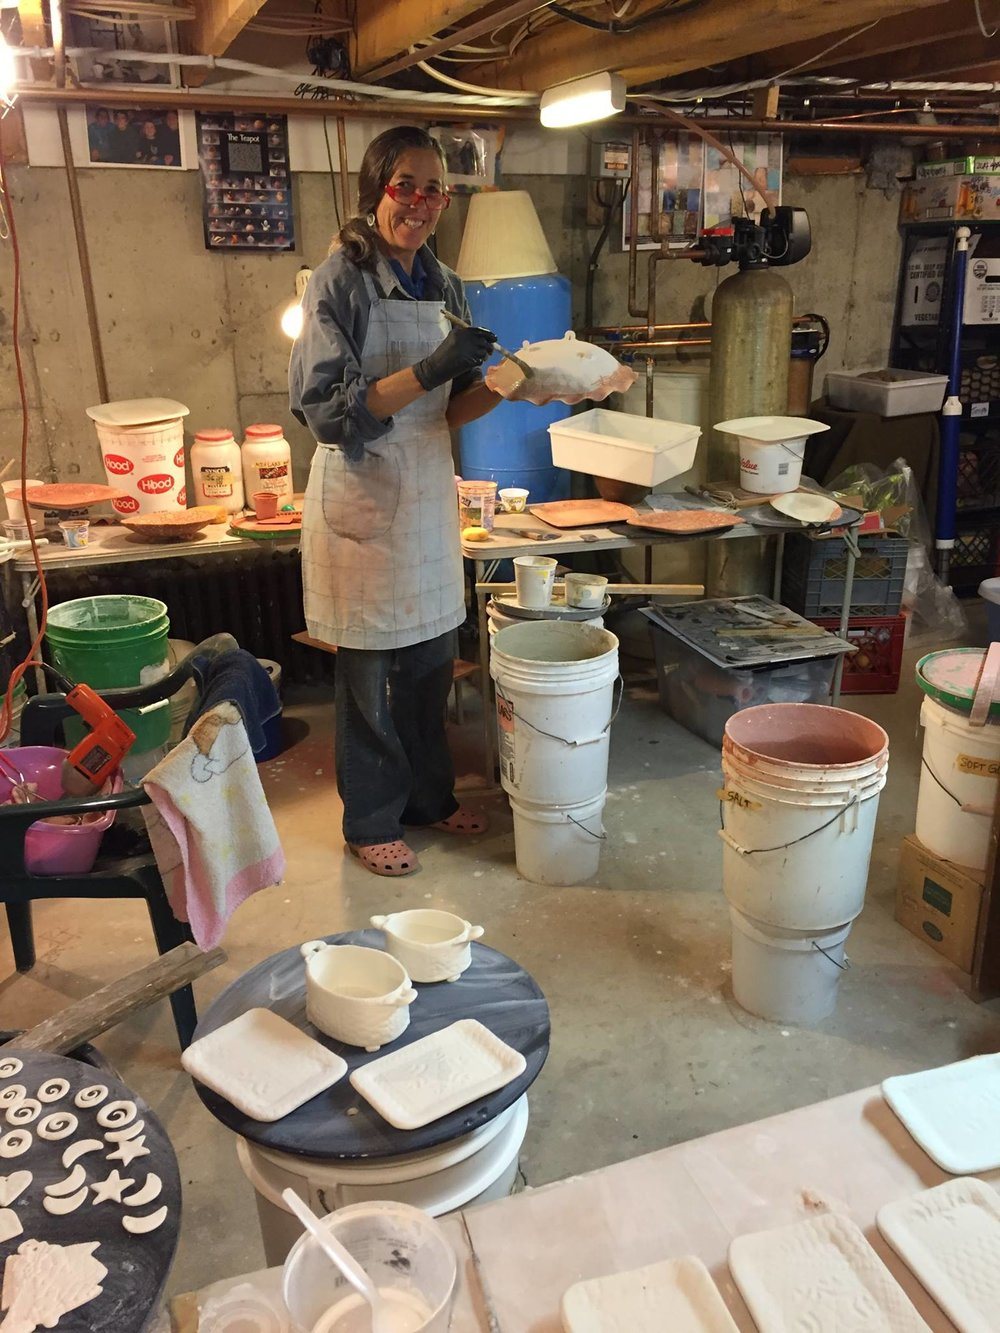 Jennifer in her ceramics studio applying glazes.